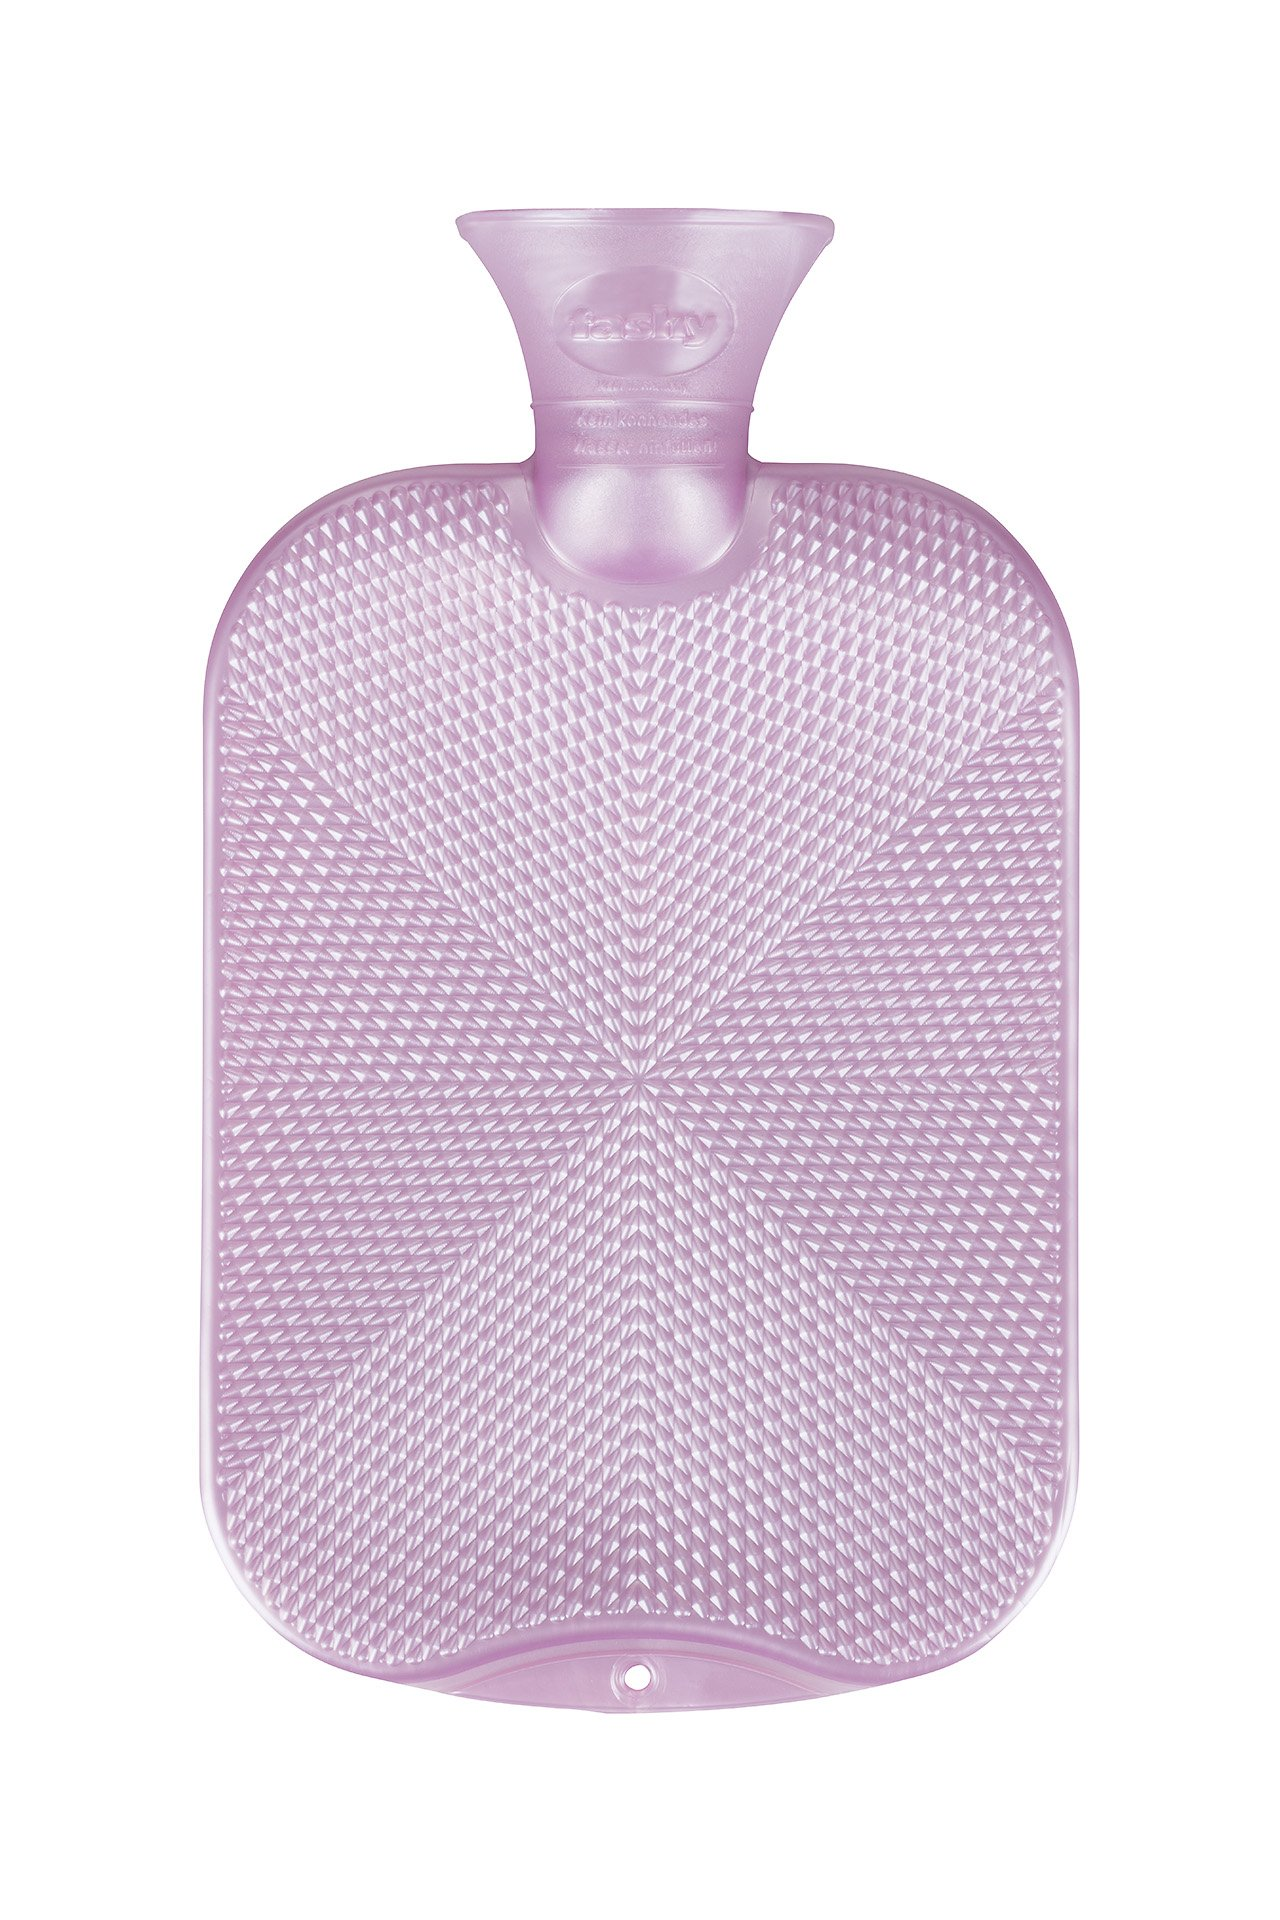 Fashy Rose Pink Crystal Star Textured Pattern Hot Water Bottle, Soothes Aches and Pains, Eases Stress, 2 Liter Capacity